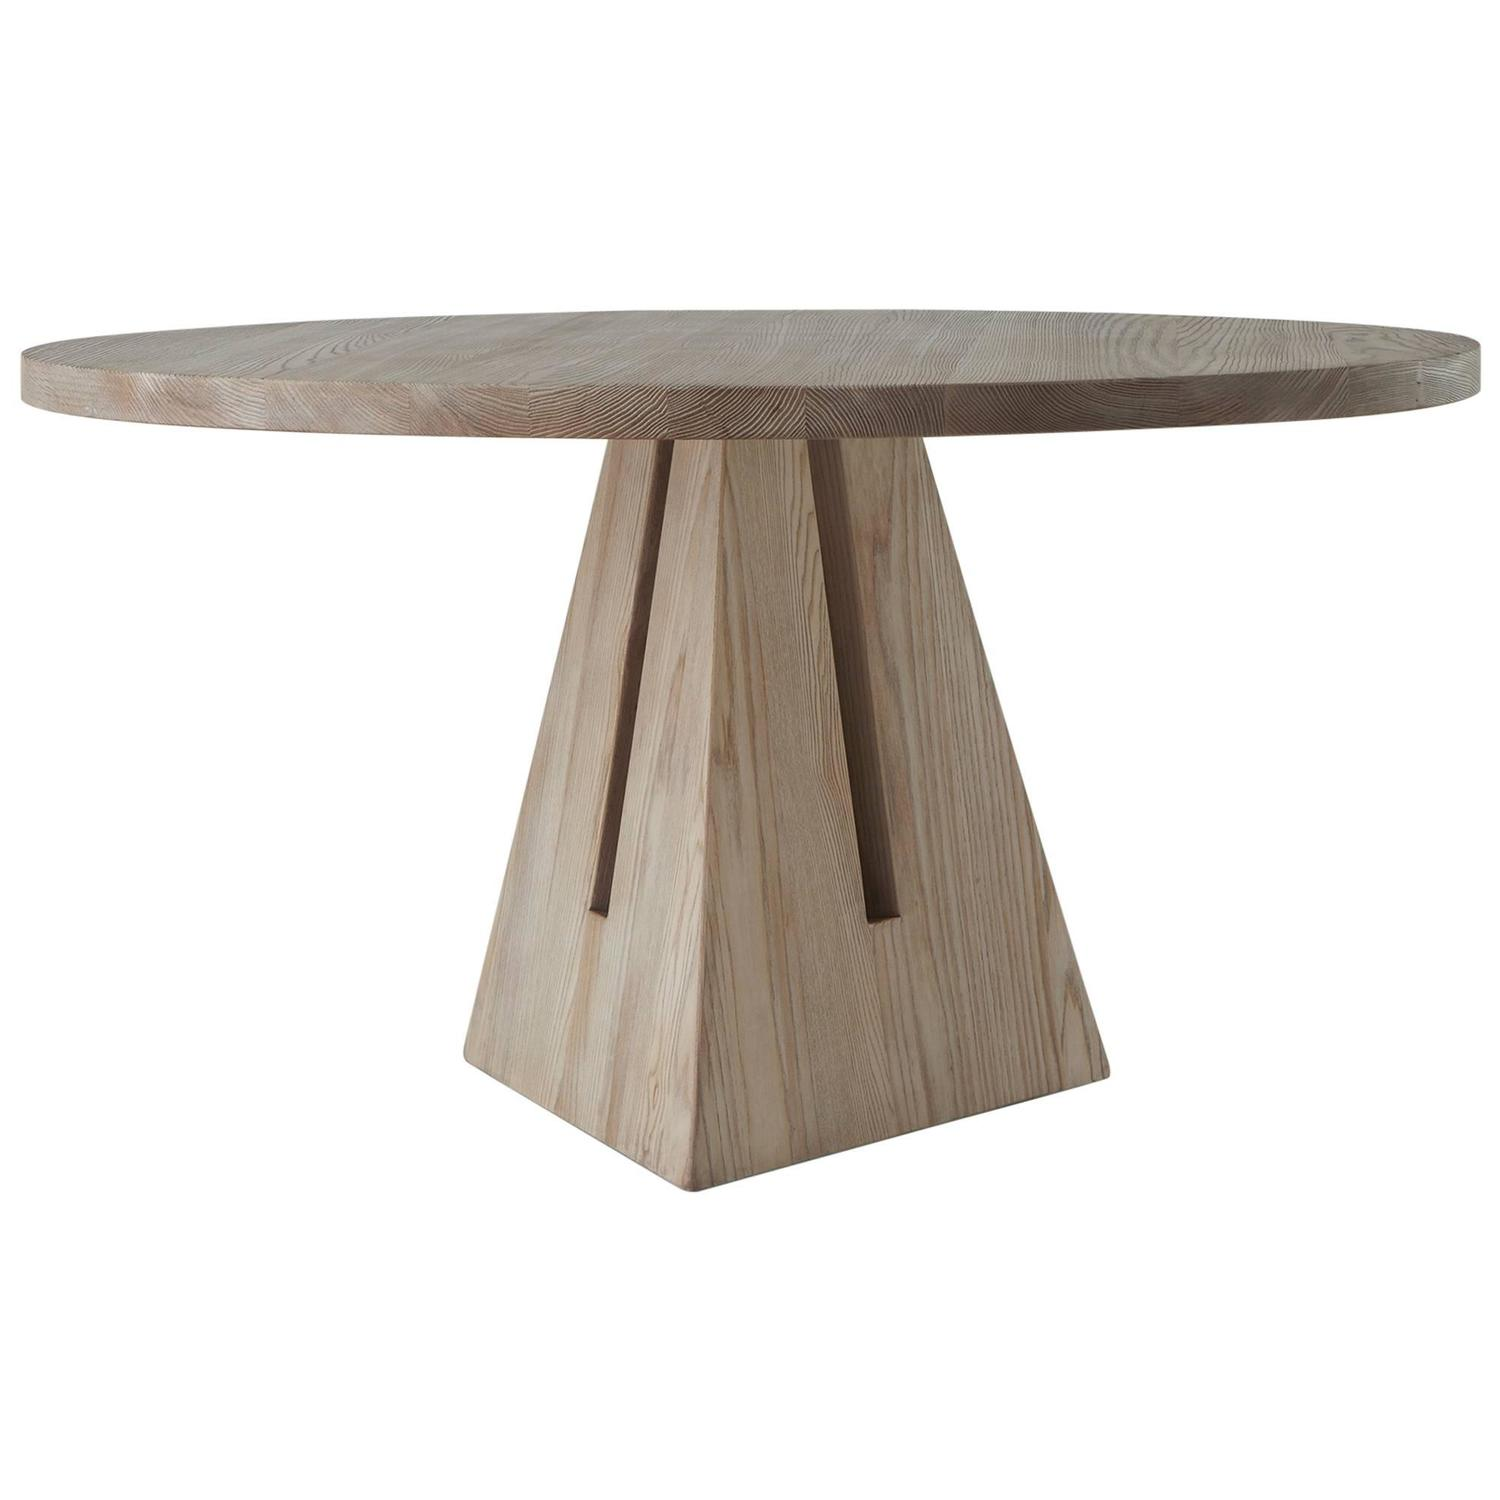 Michael taylor cyprus tree trunk dining table at 1stdibs - Michael Taylor Cyprus Tree Trunk Dining Table At 1stdibs 40